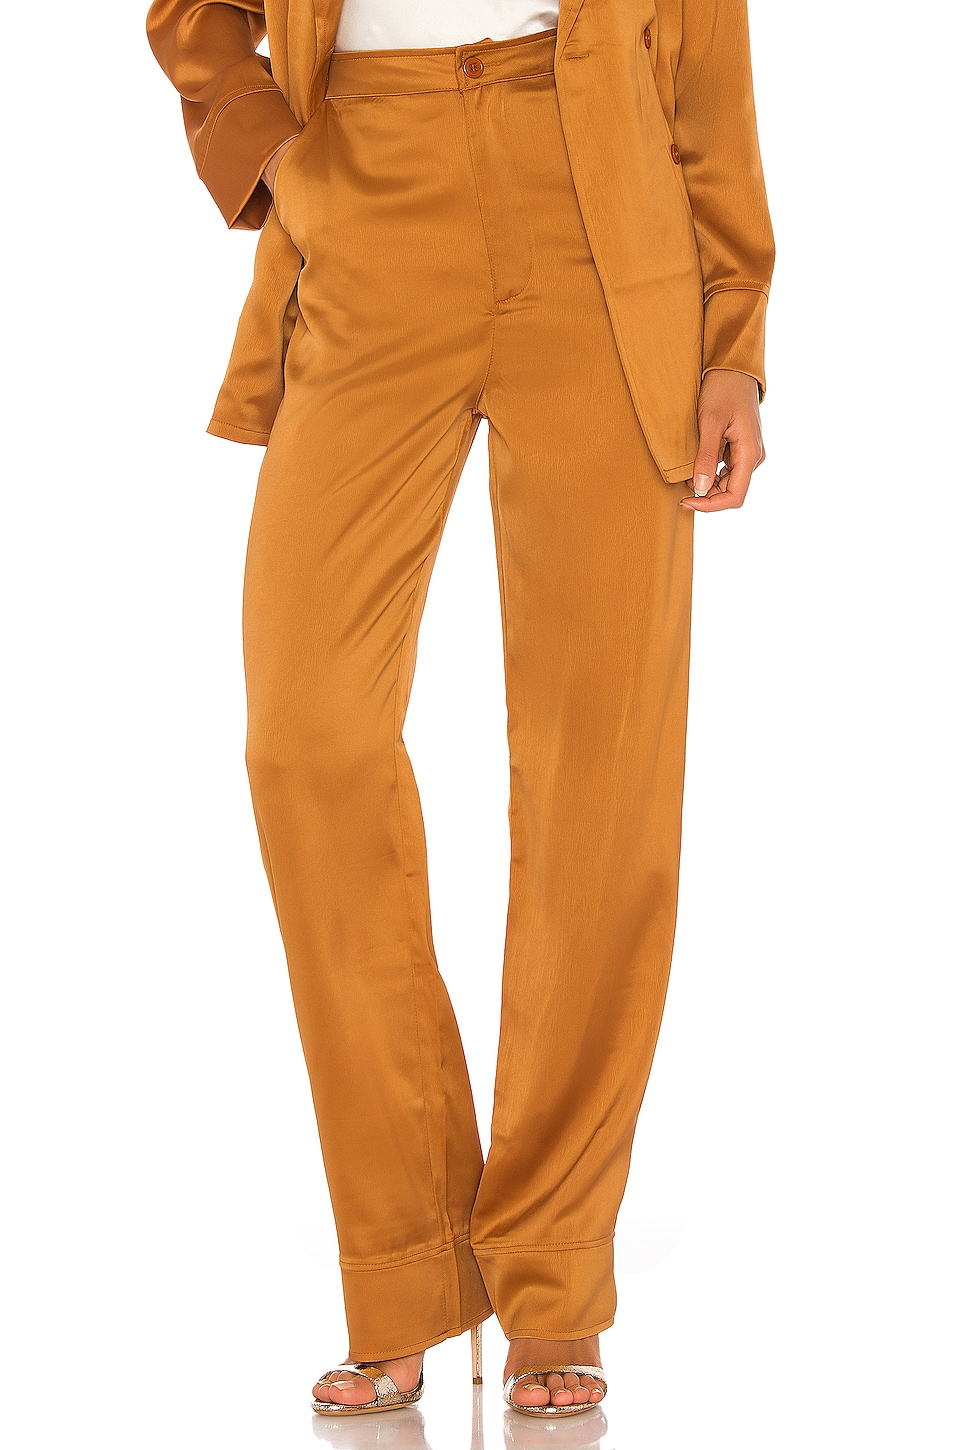 KENDALL + KYLIE Charlie Satin Pant in Butterscotch